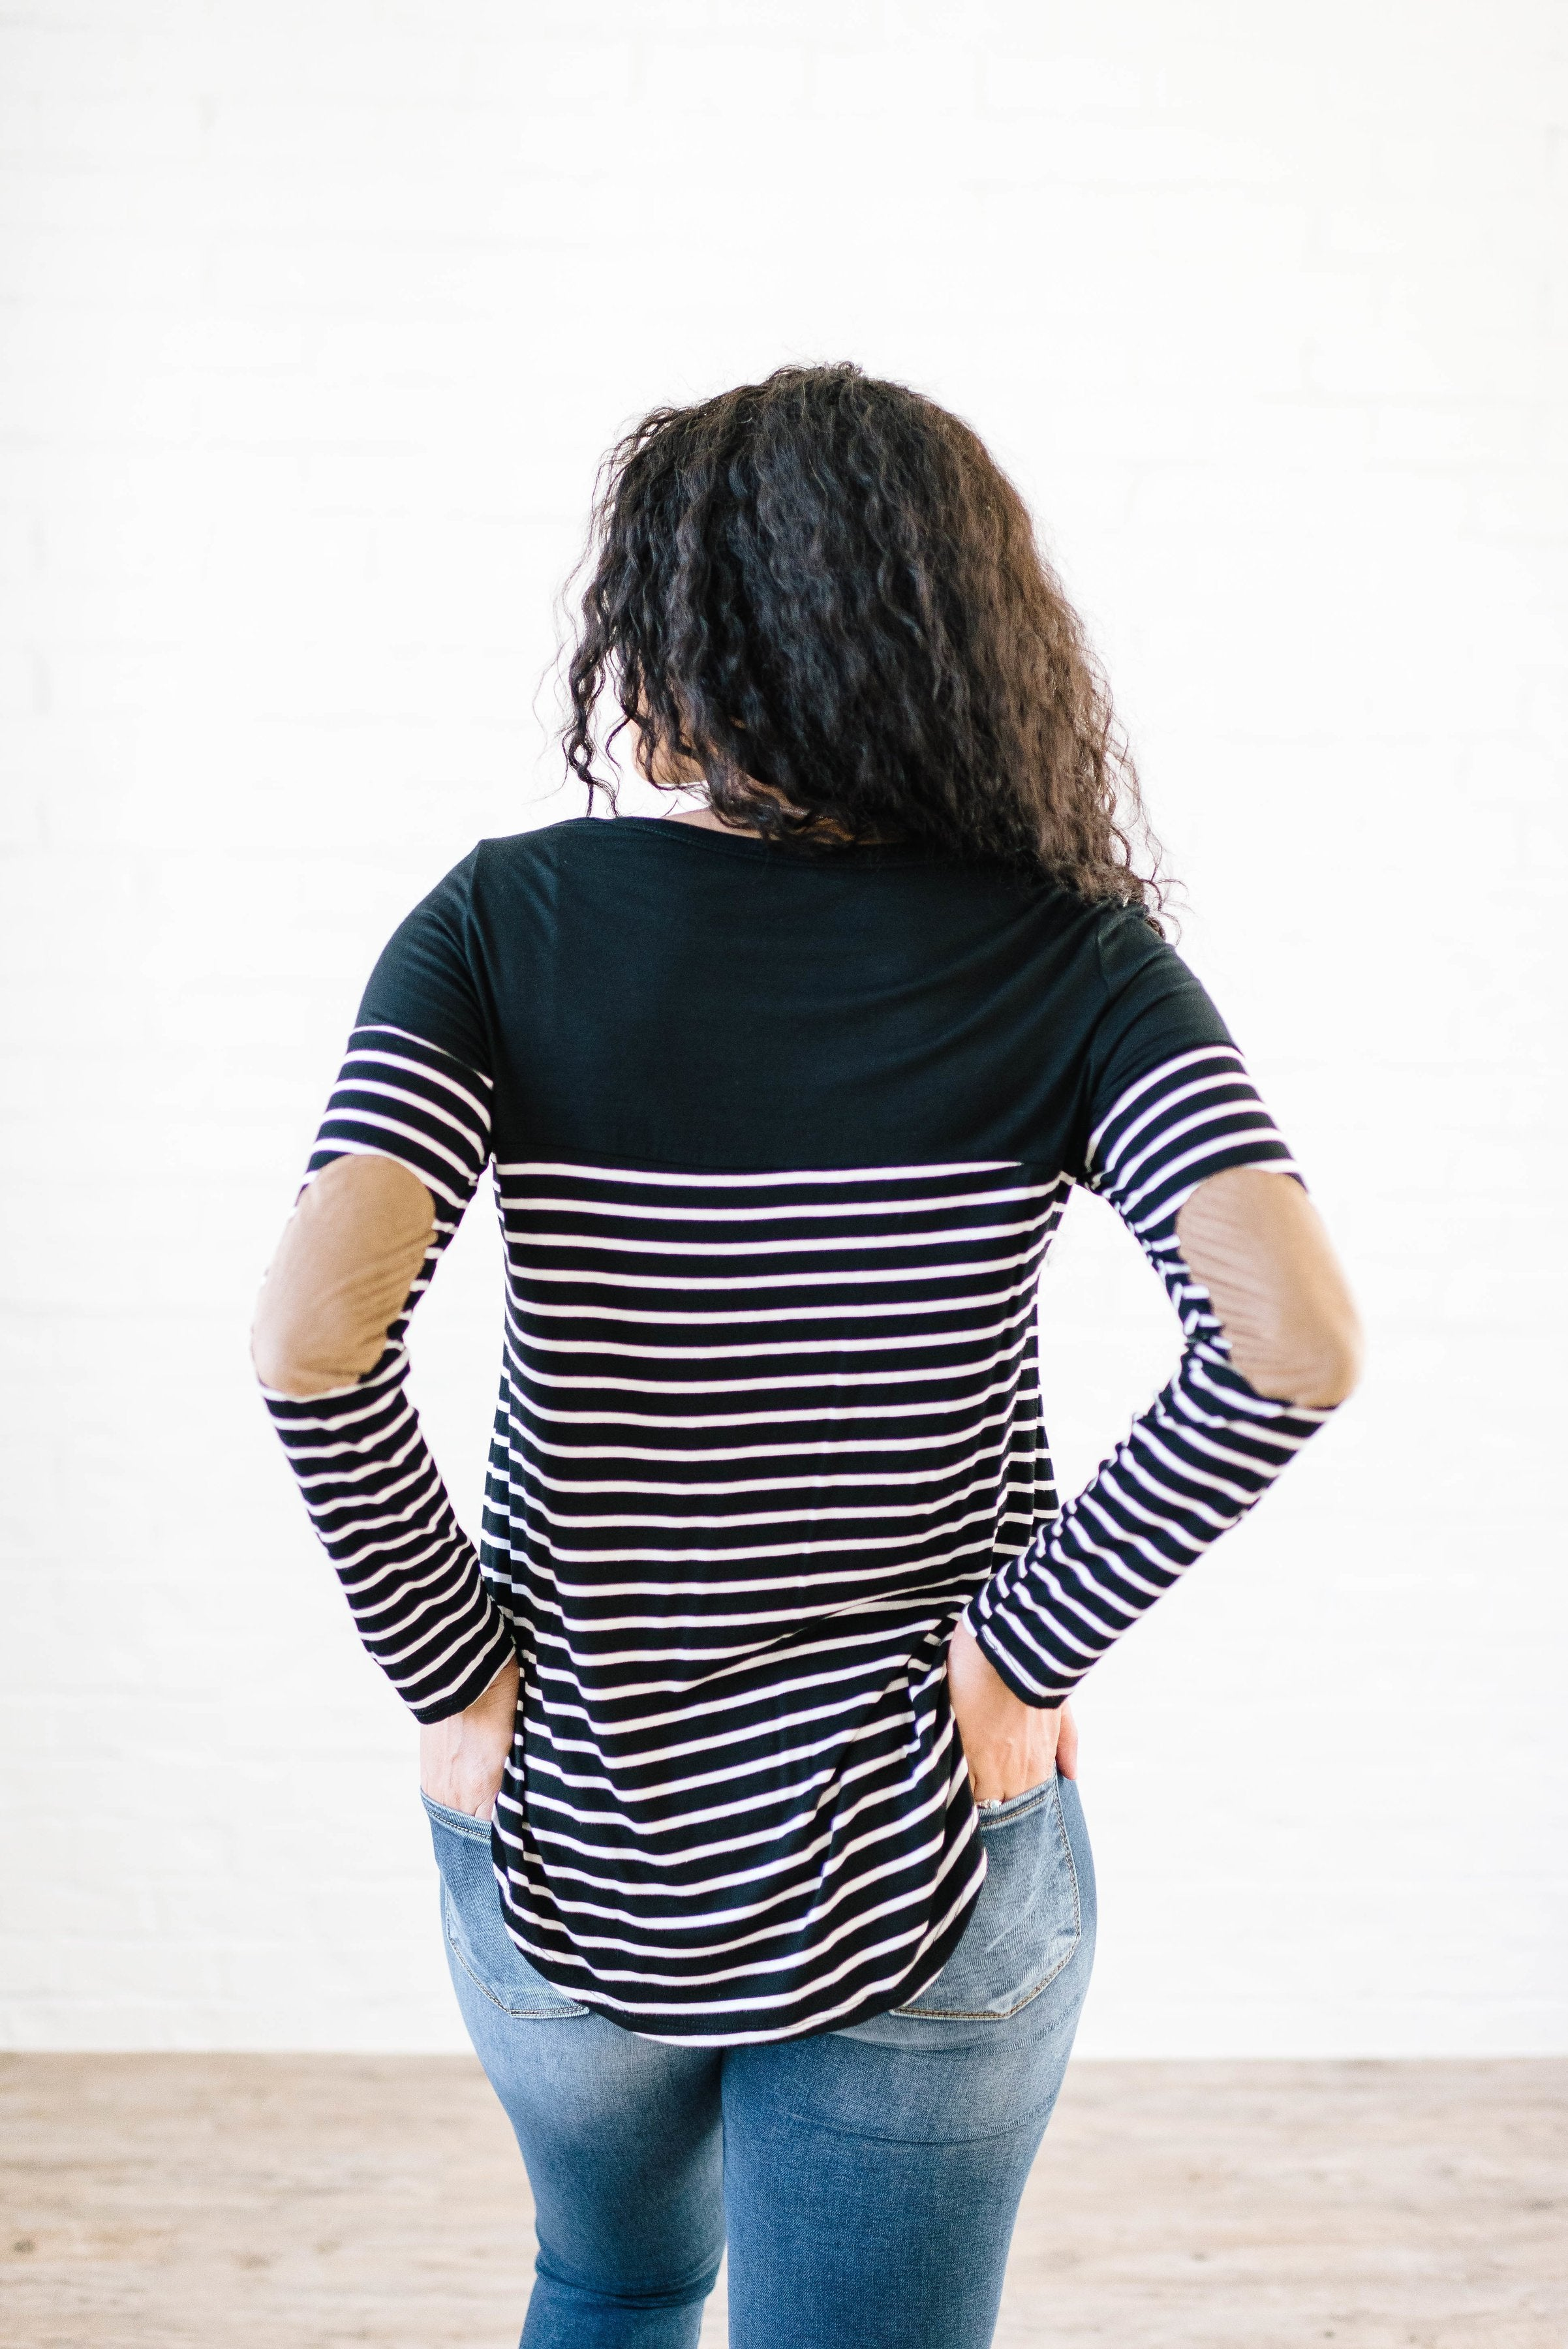 Lincoln Long Sleeve Top in Black & Cream